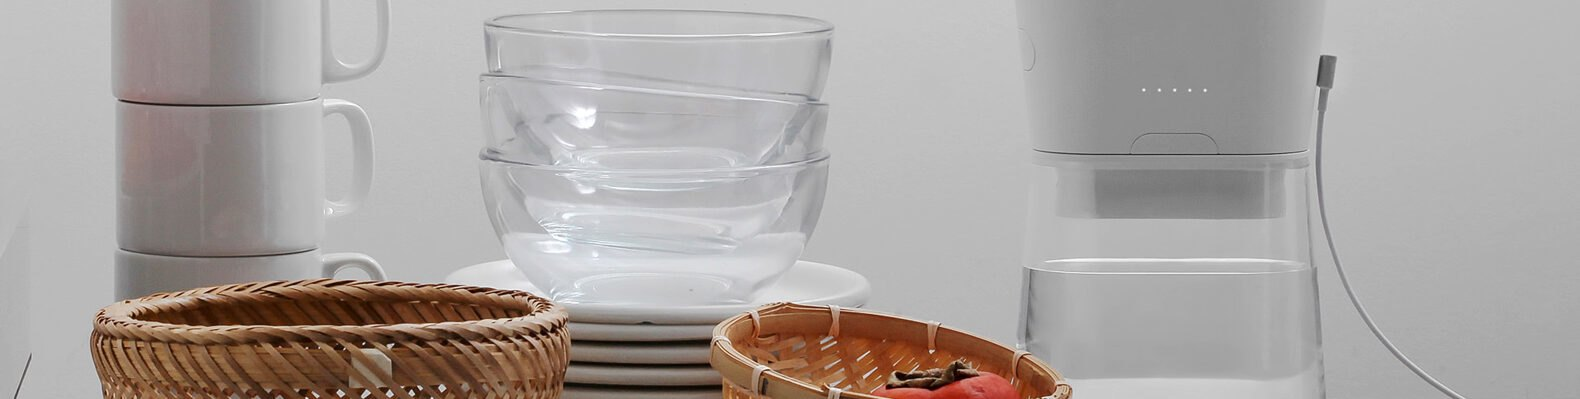 white carafe near stacked dishes